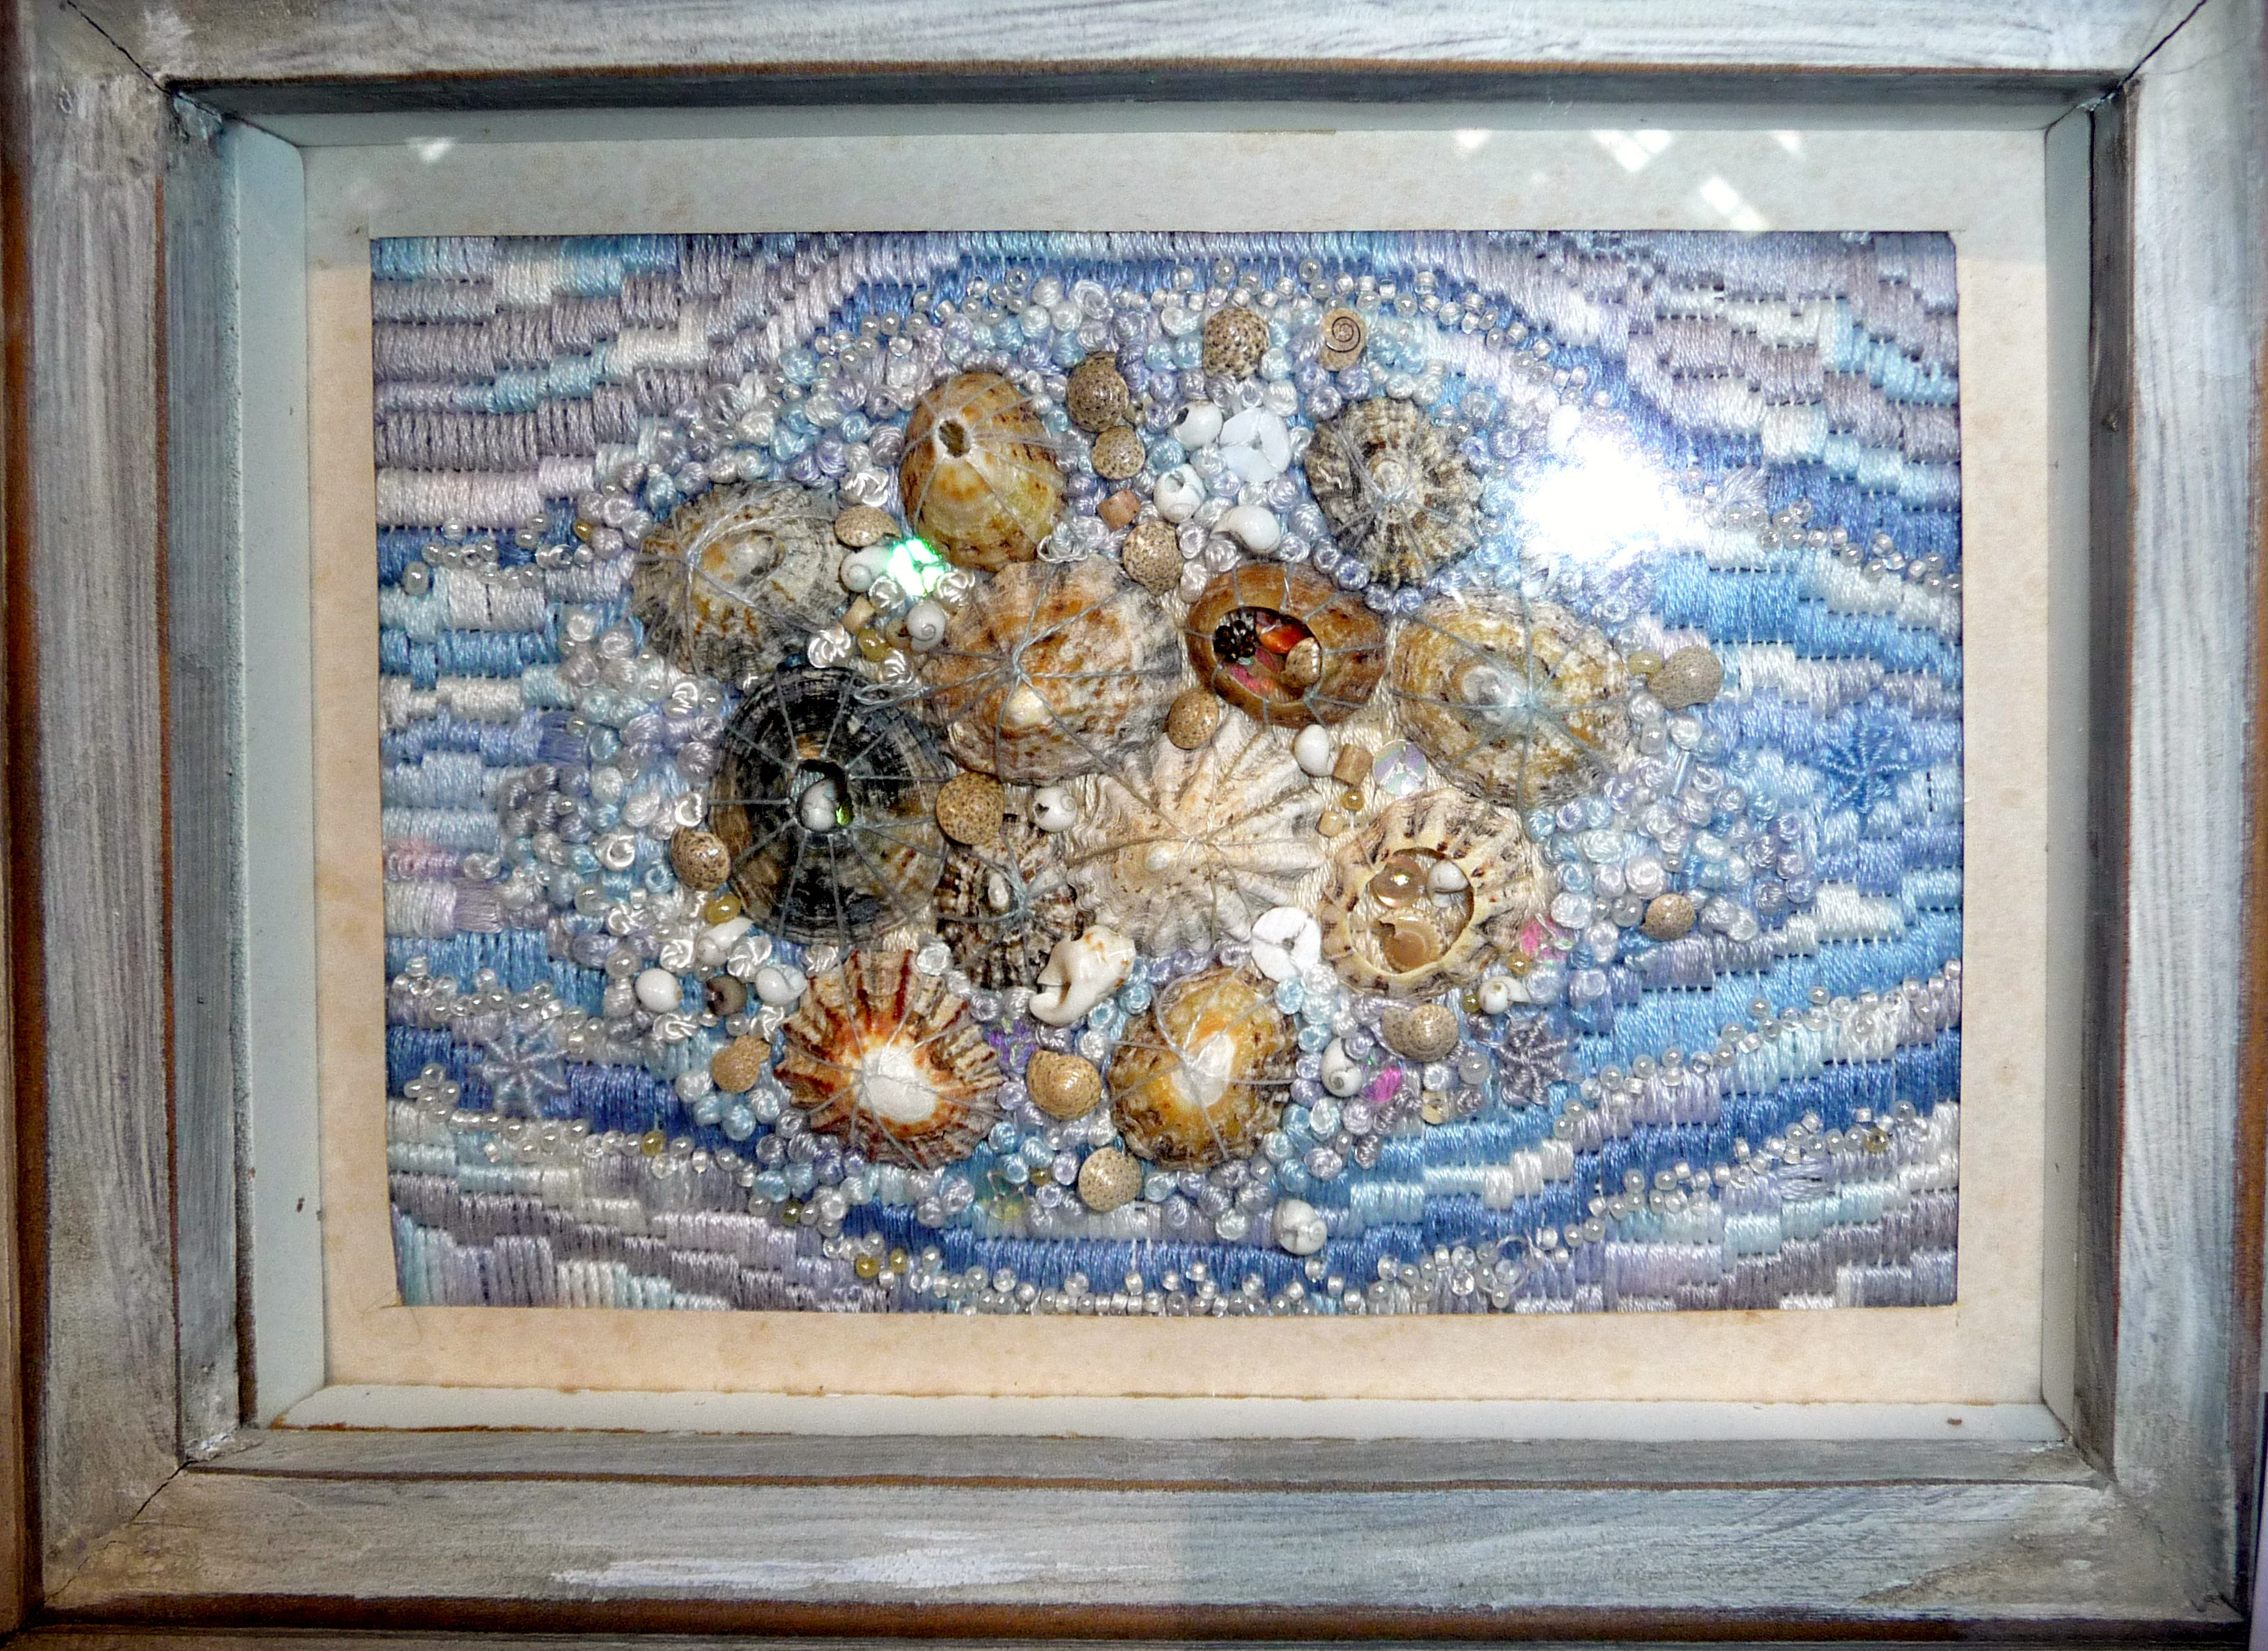 SEASHORE by Shirley Williams, embellished canvas embroidery